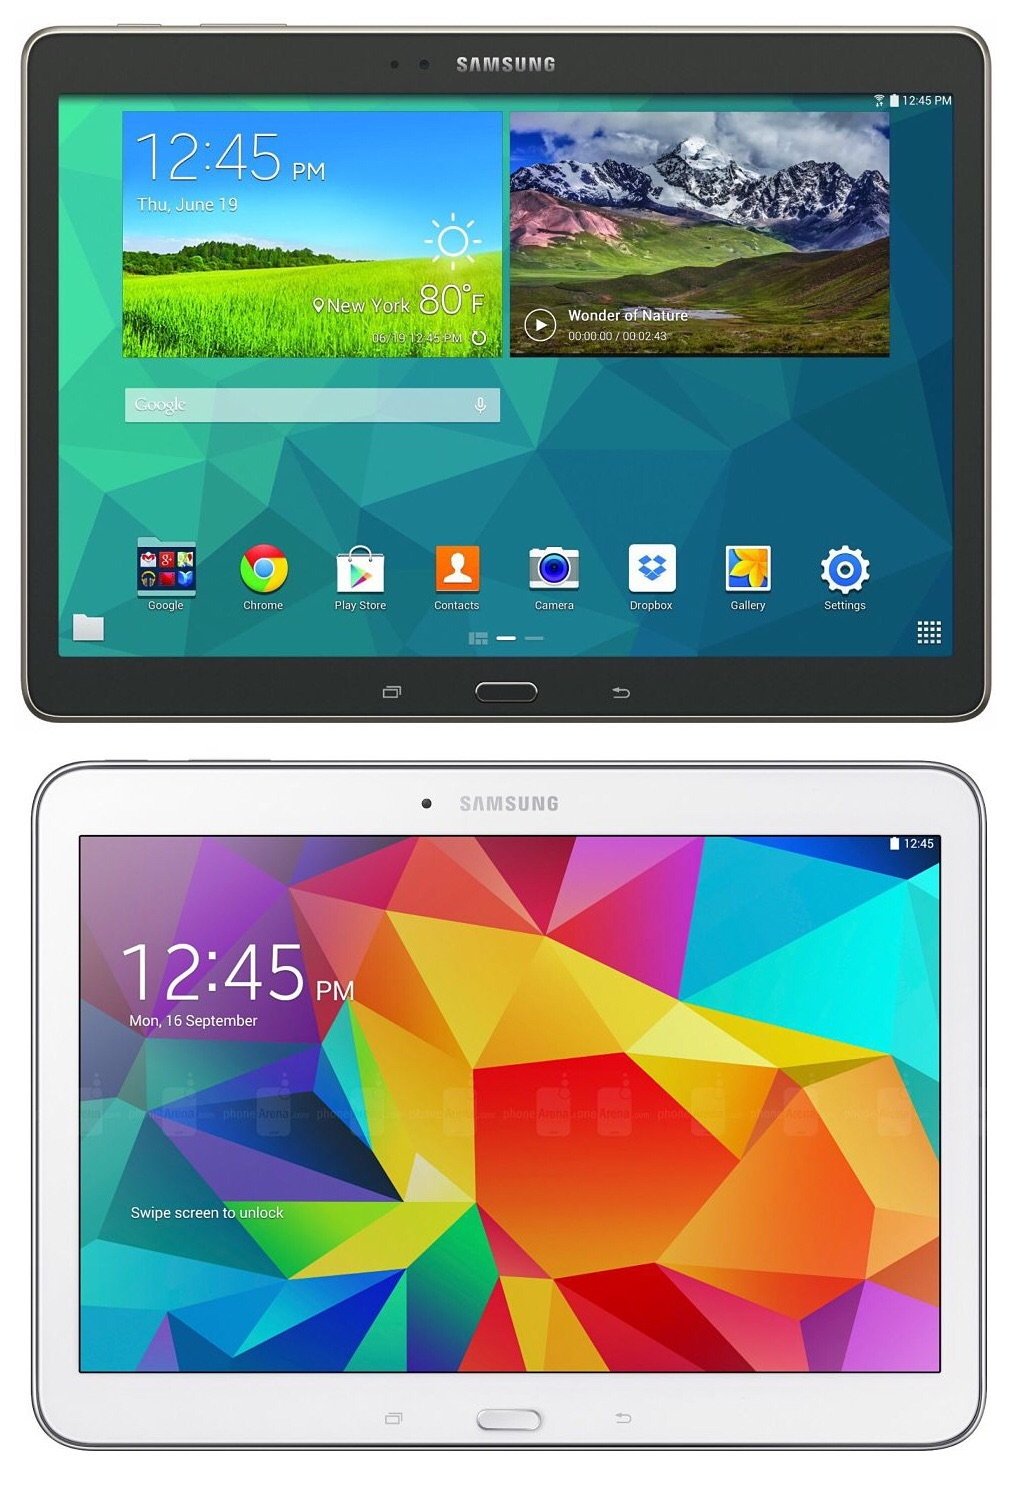 samsung galaxy tab s 10 5 vs samsung galaxy tab 4 10 1. Black Bedroom Furniture Sets. Home Design Ideas